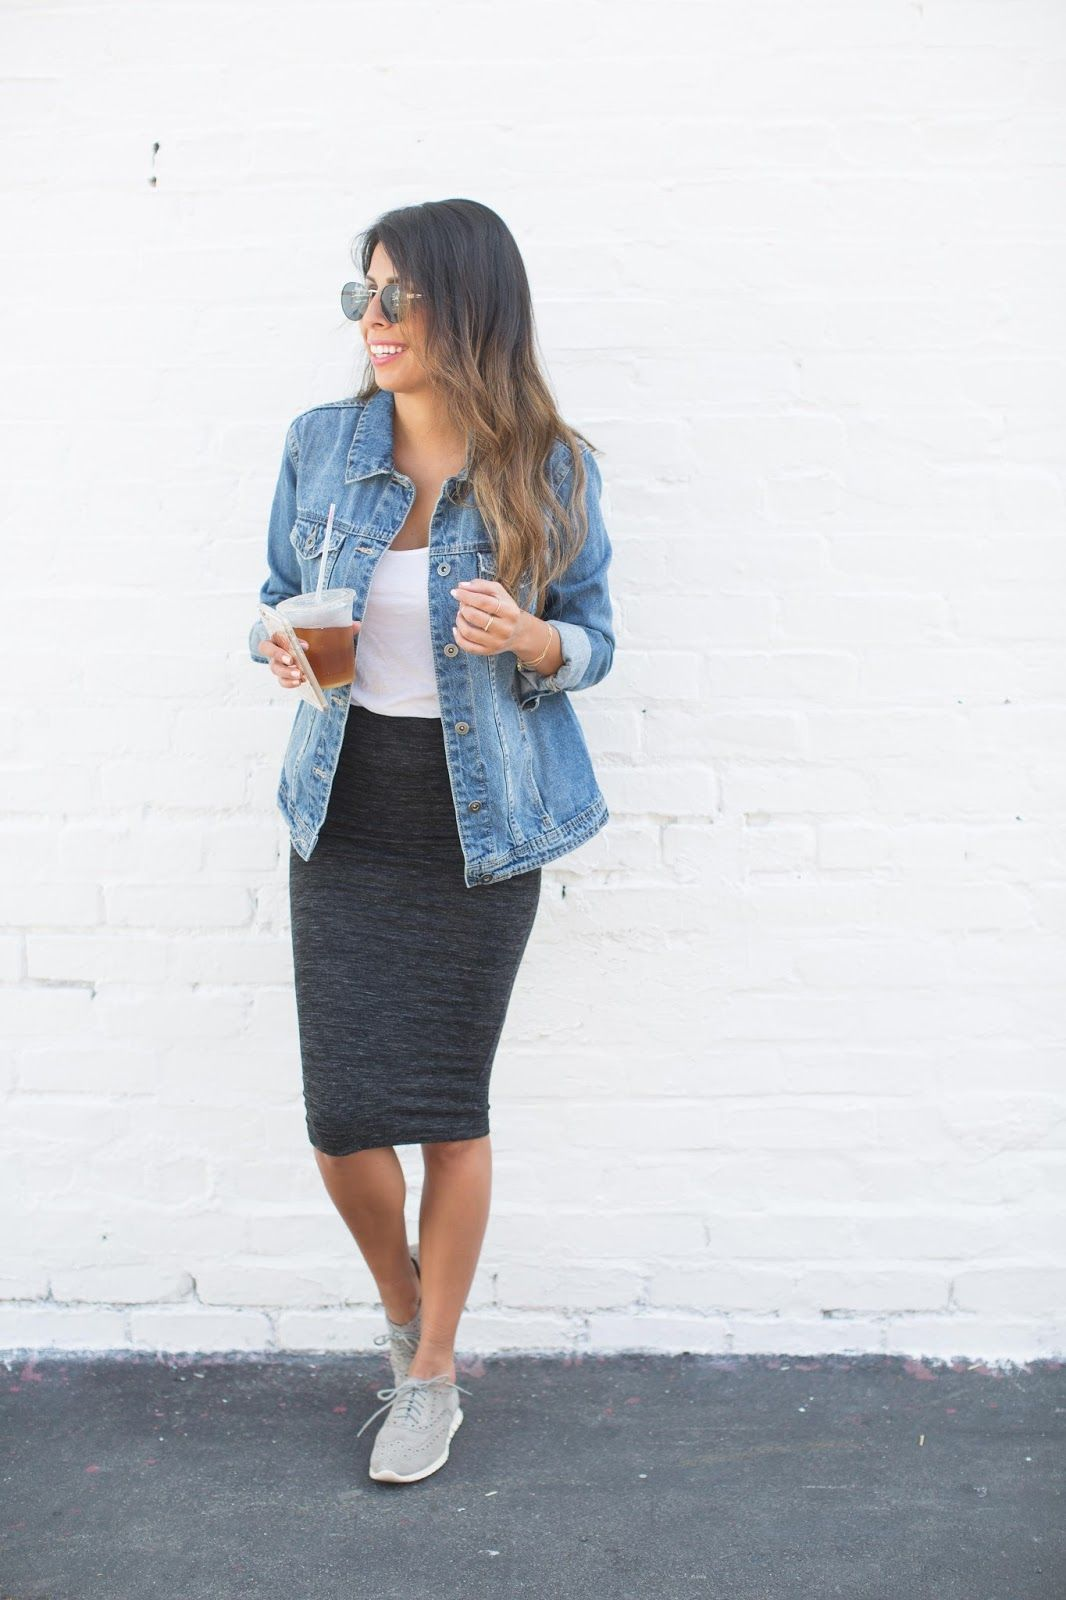 How to wear denim jacket how to wear tennis shoes with skirts casual weekend outfit ideas ...